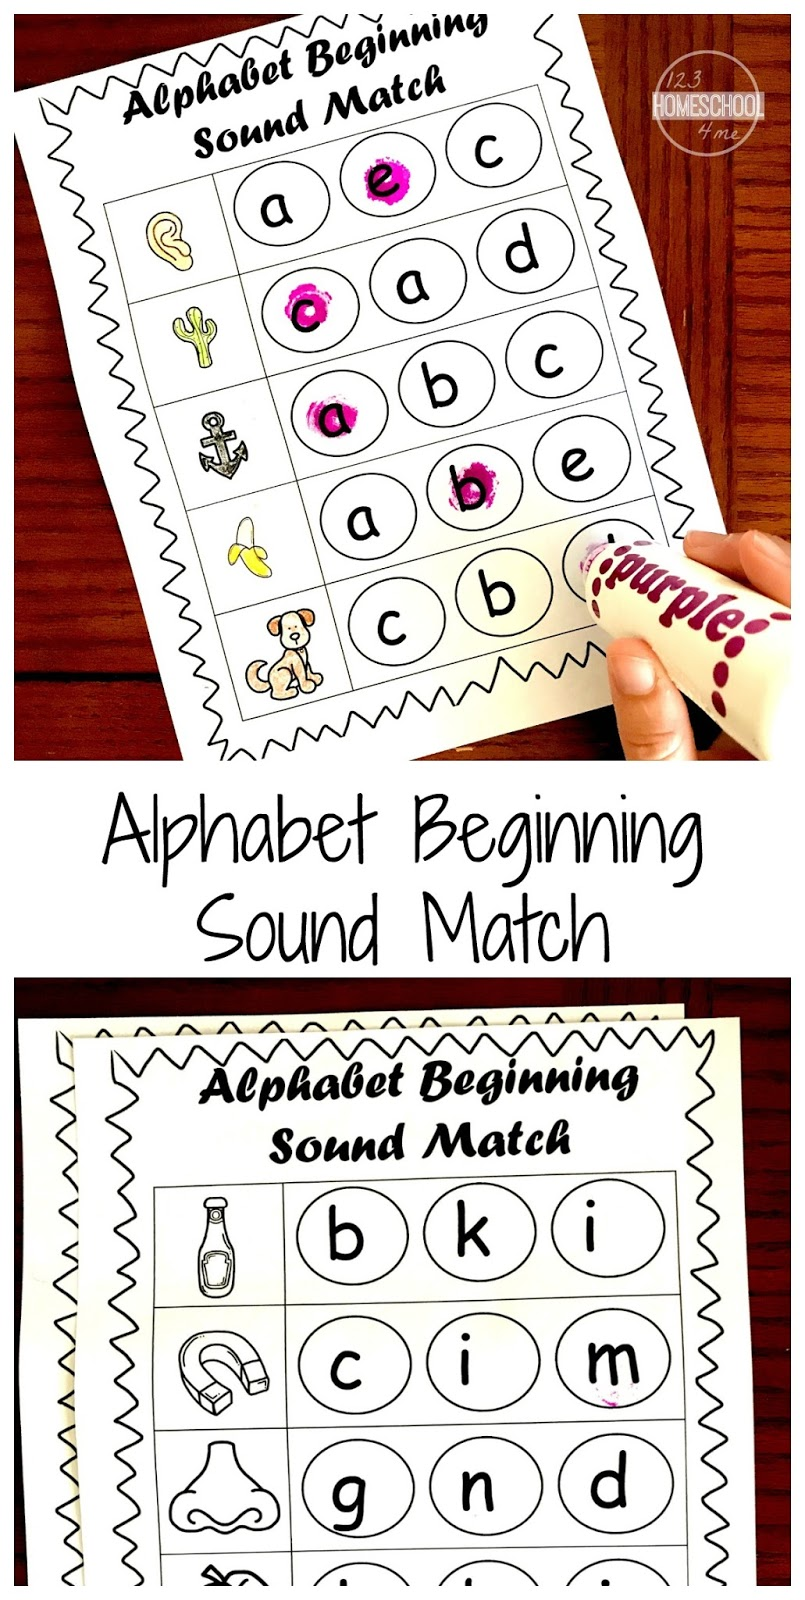 Worksheet Beginning Sounds Worksheets Thedanks Worksheet For Everyone